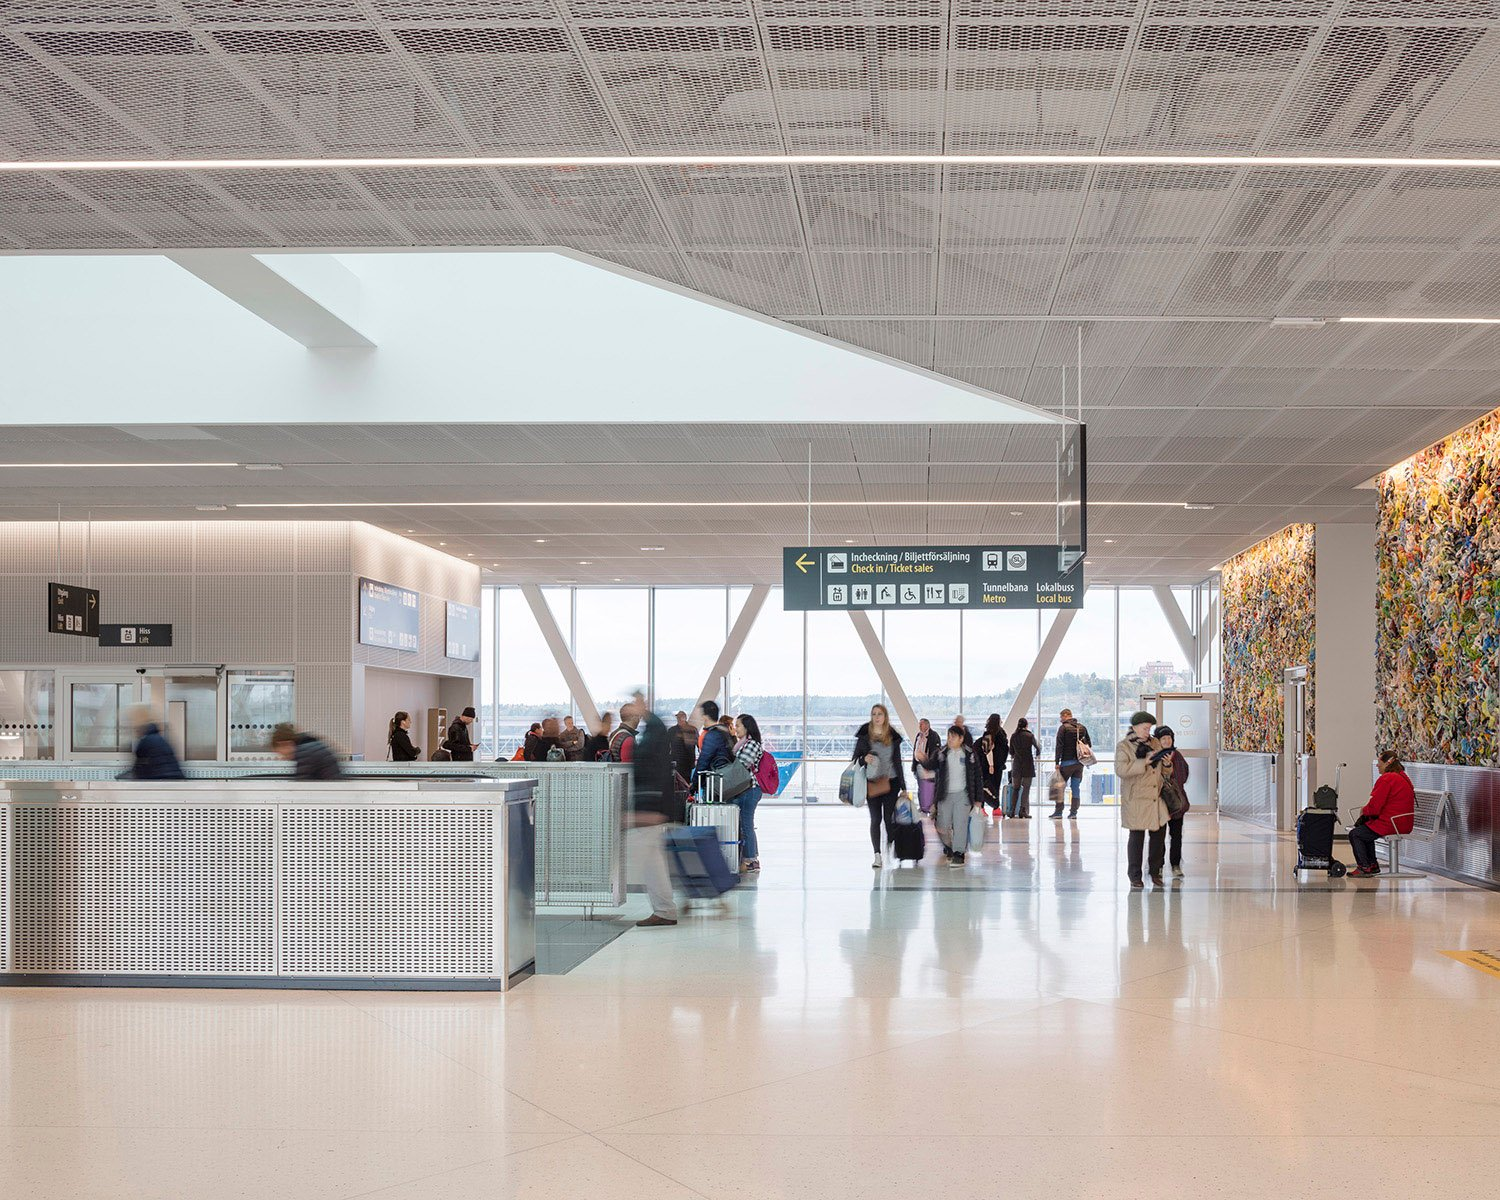 The arrival hall with views of the harbor and artwork by Matthias van Arkel